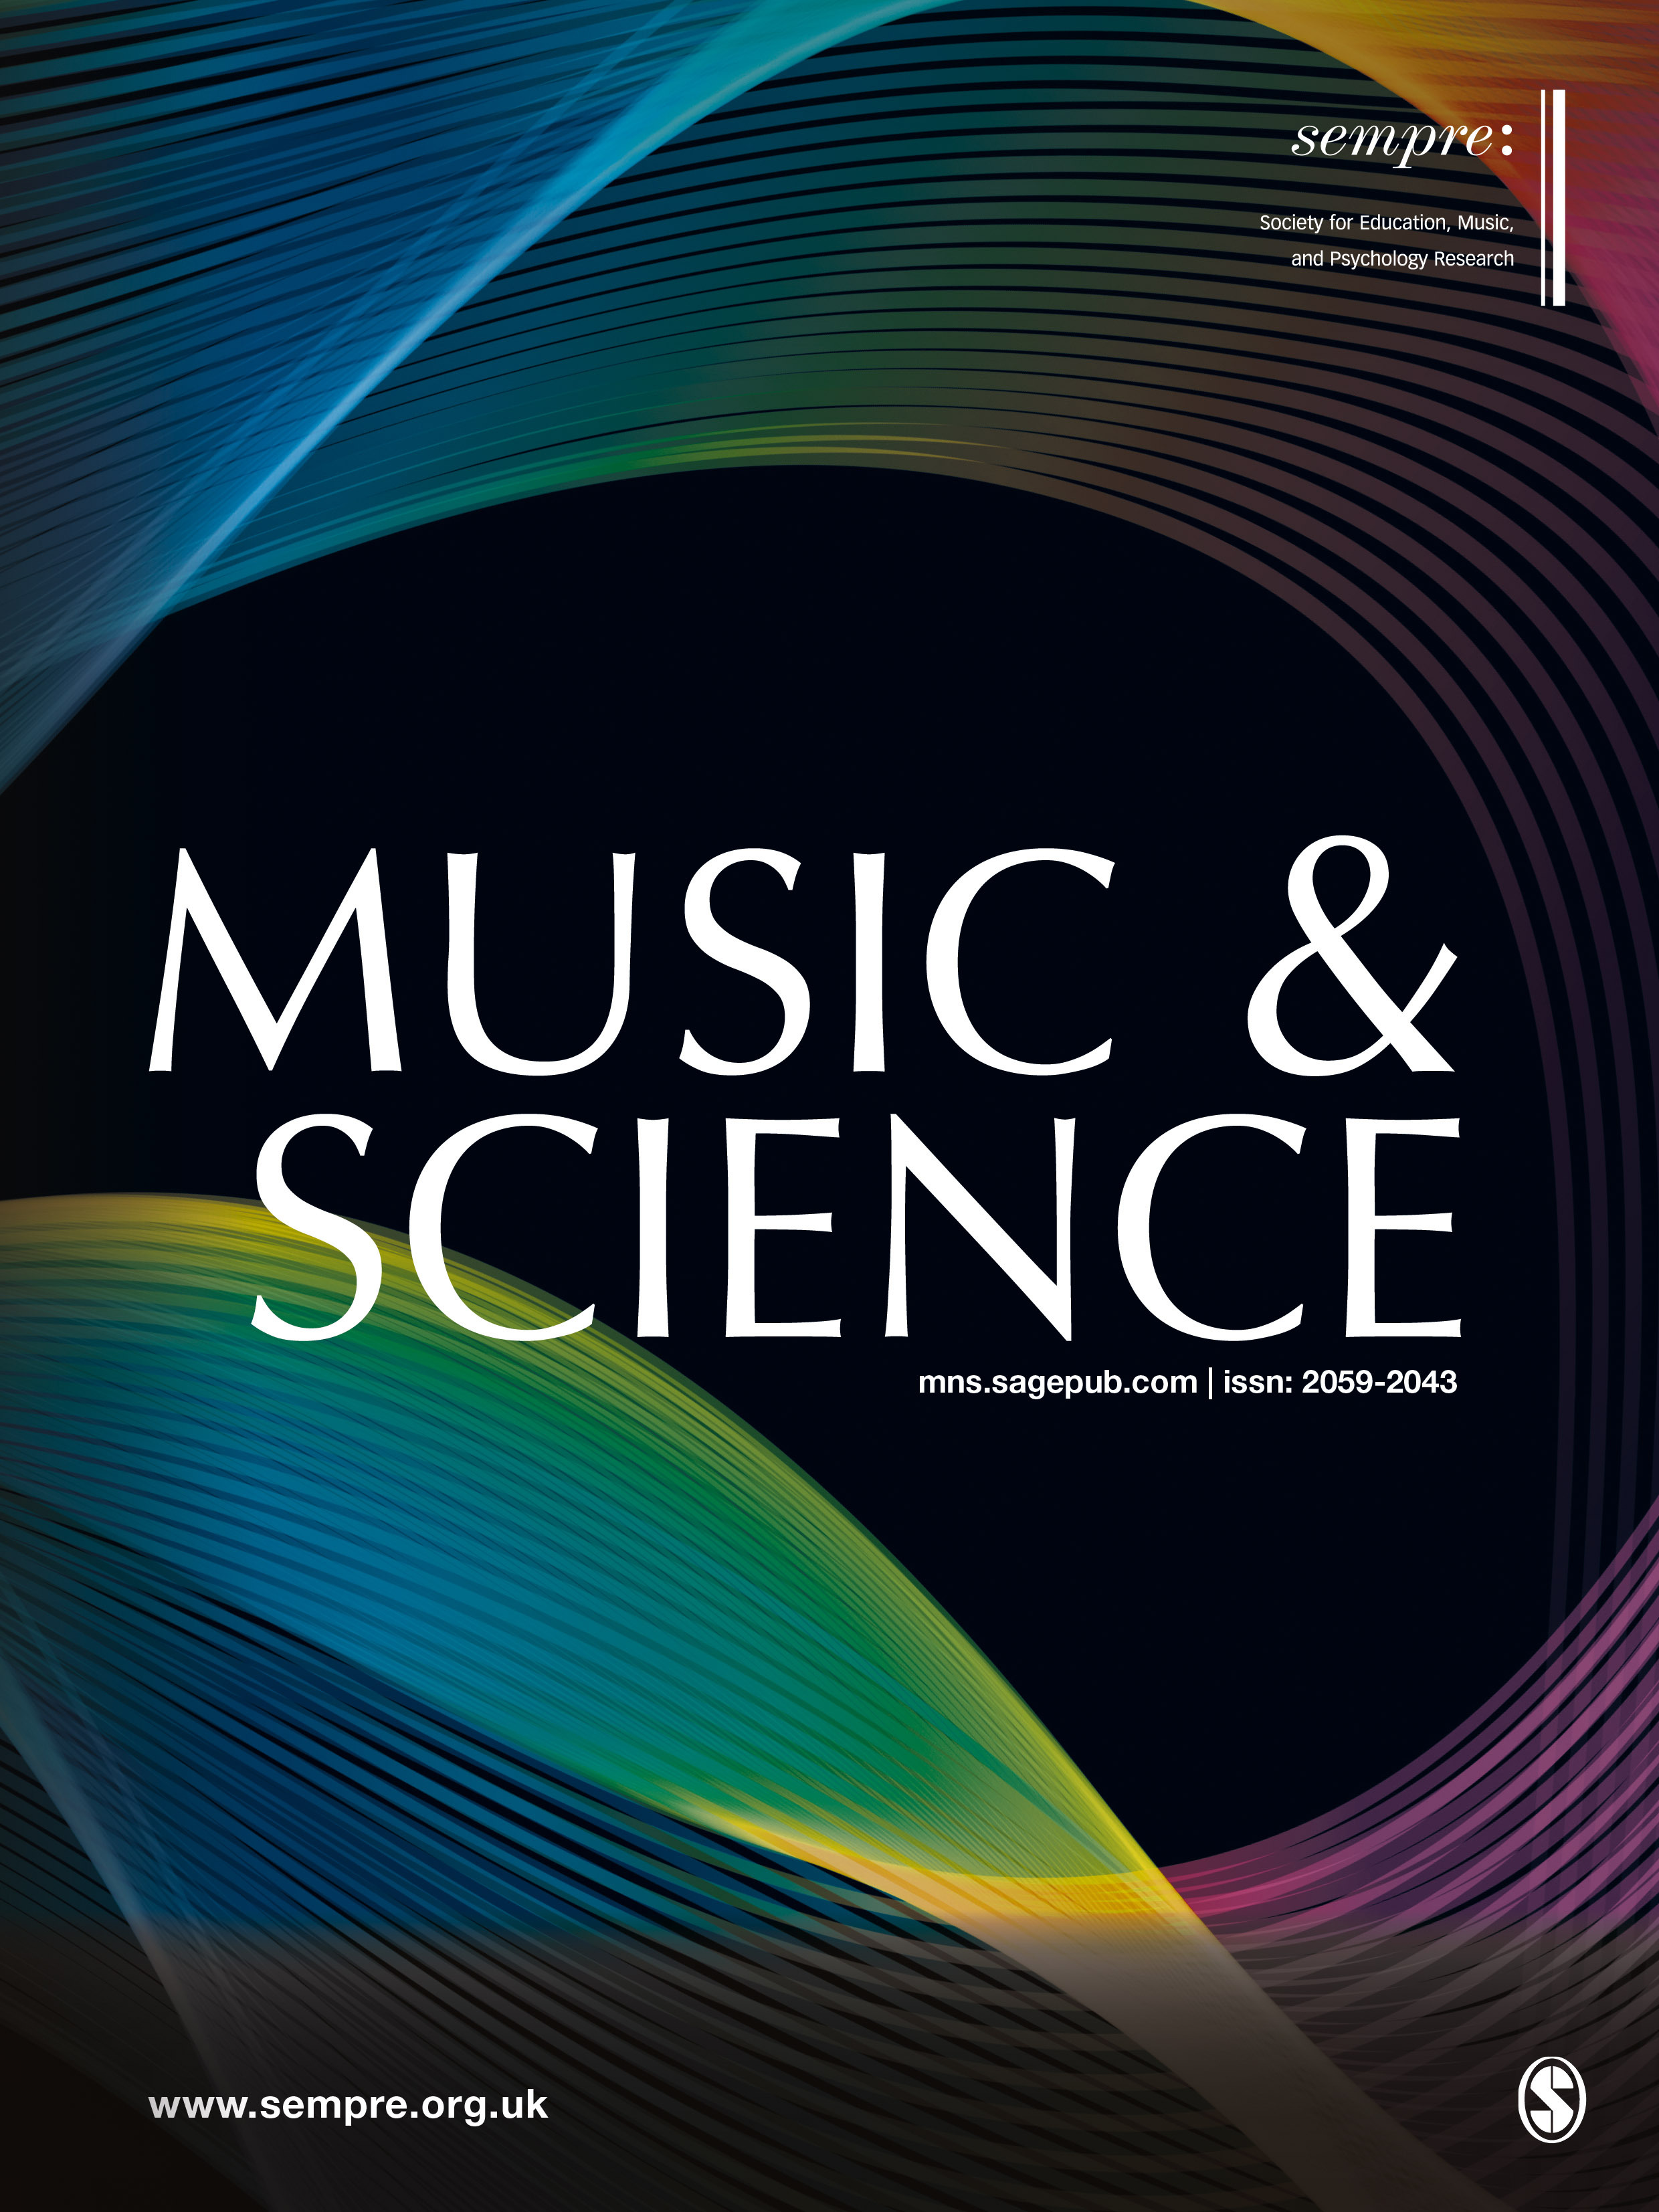 Music & Science